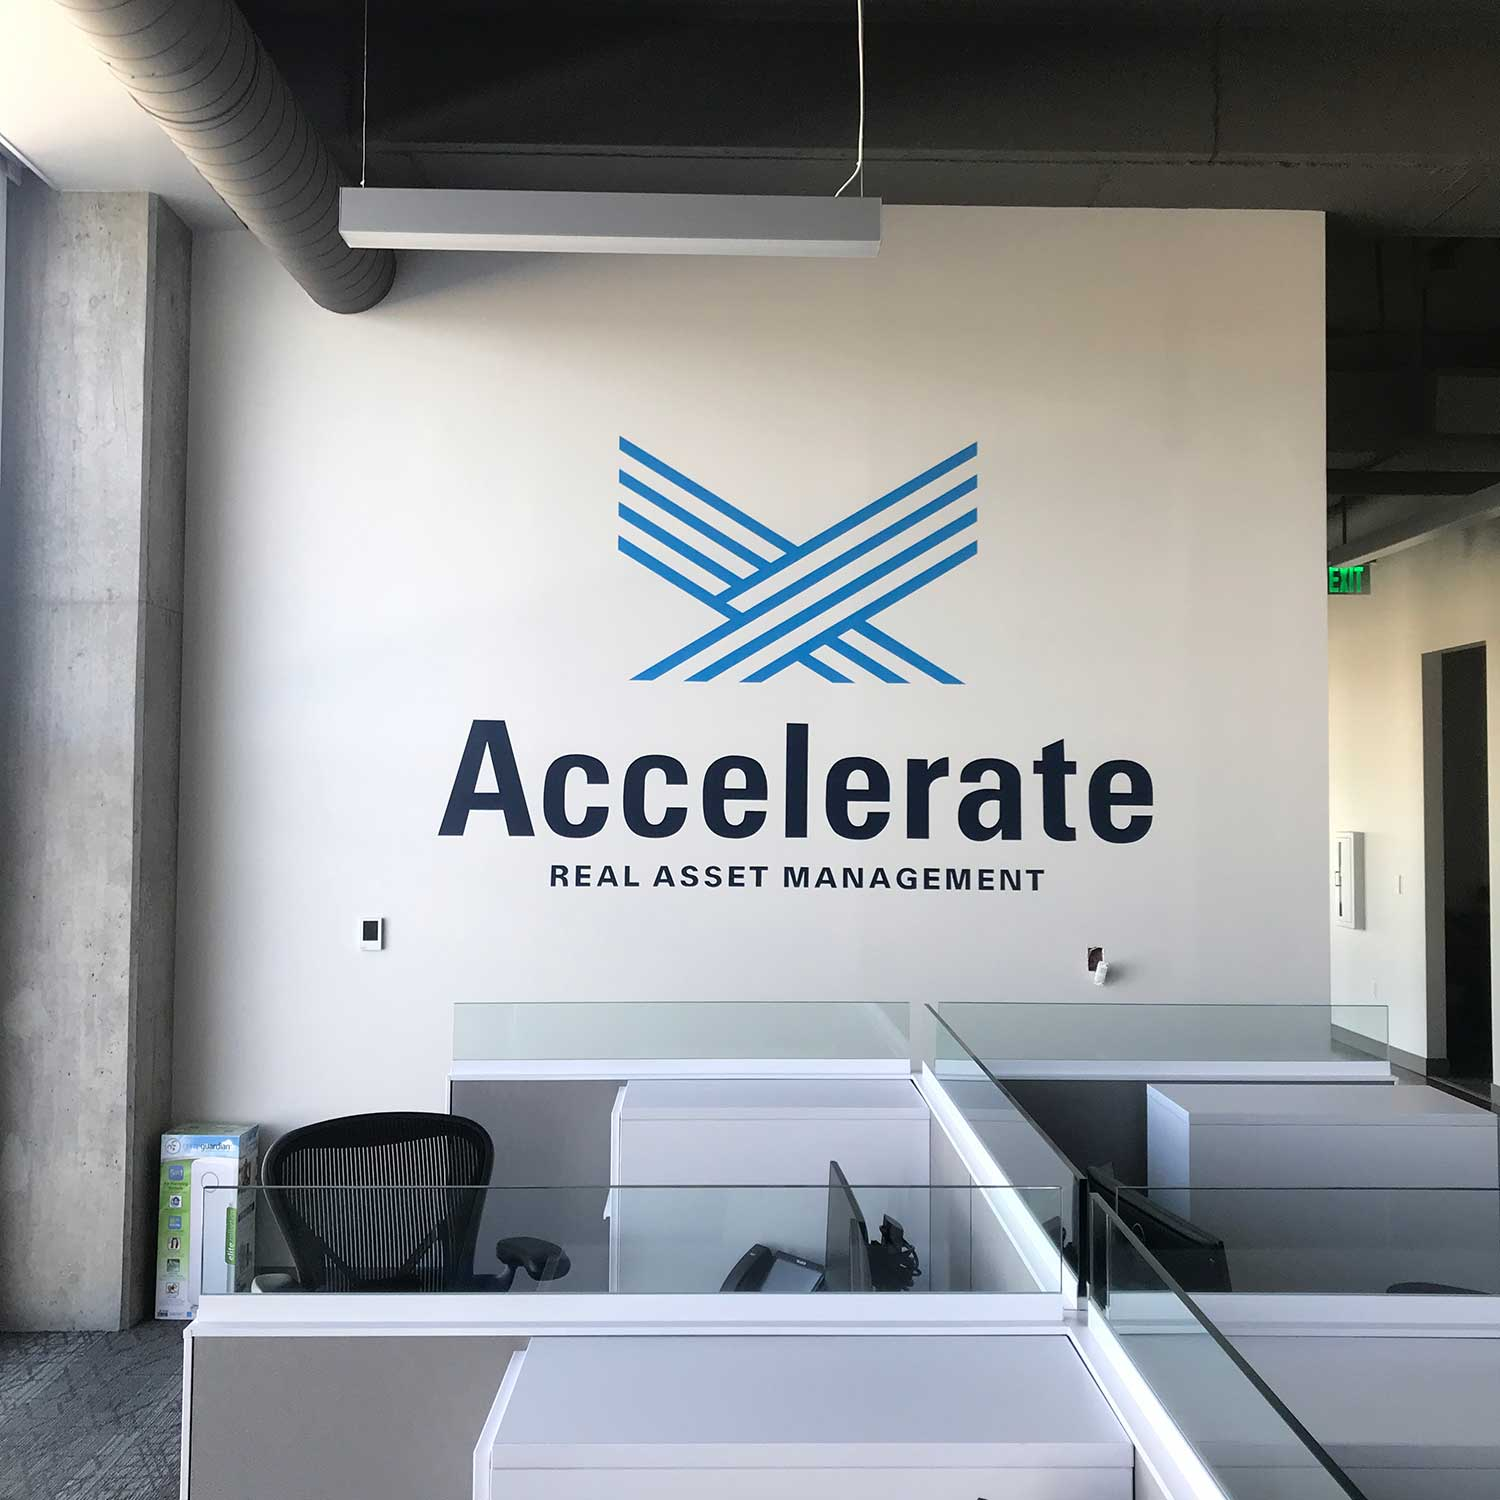 Accelerate Investments - mural - hand-painted lettering - lettering mural - logo painting - Dace Kidd - Mural Artist Tx